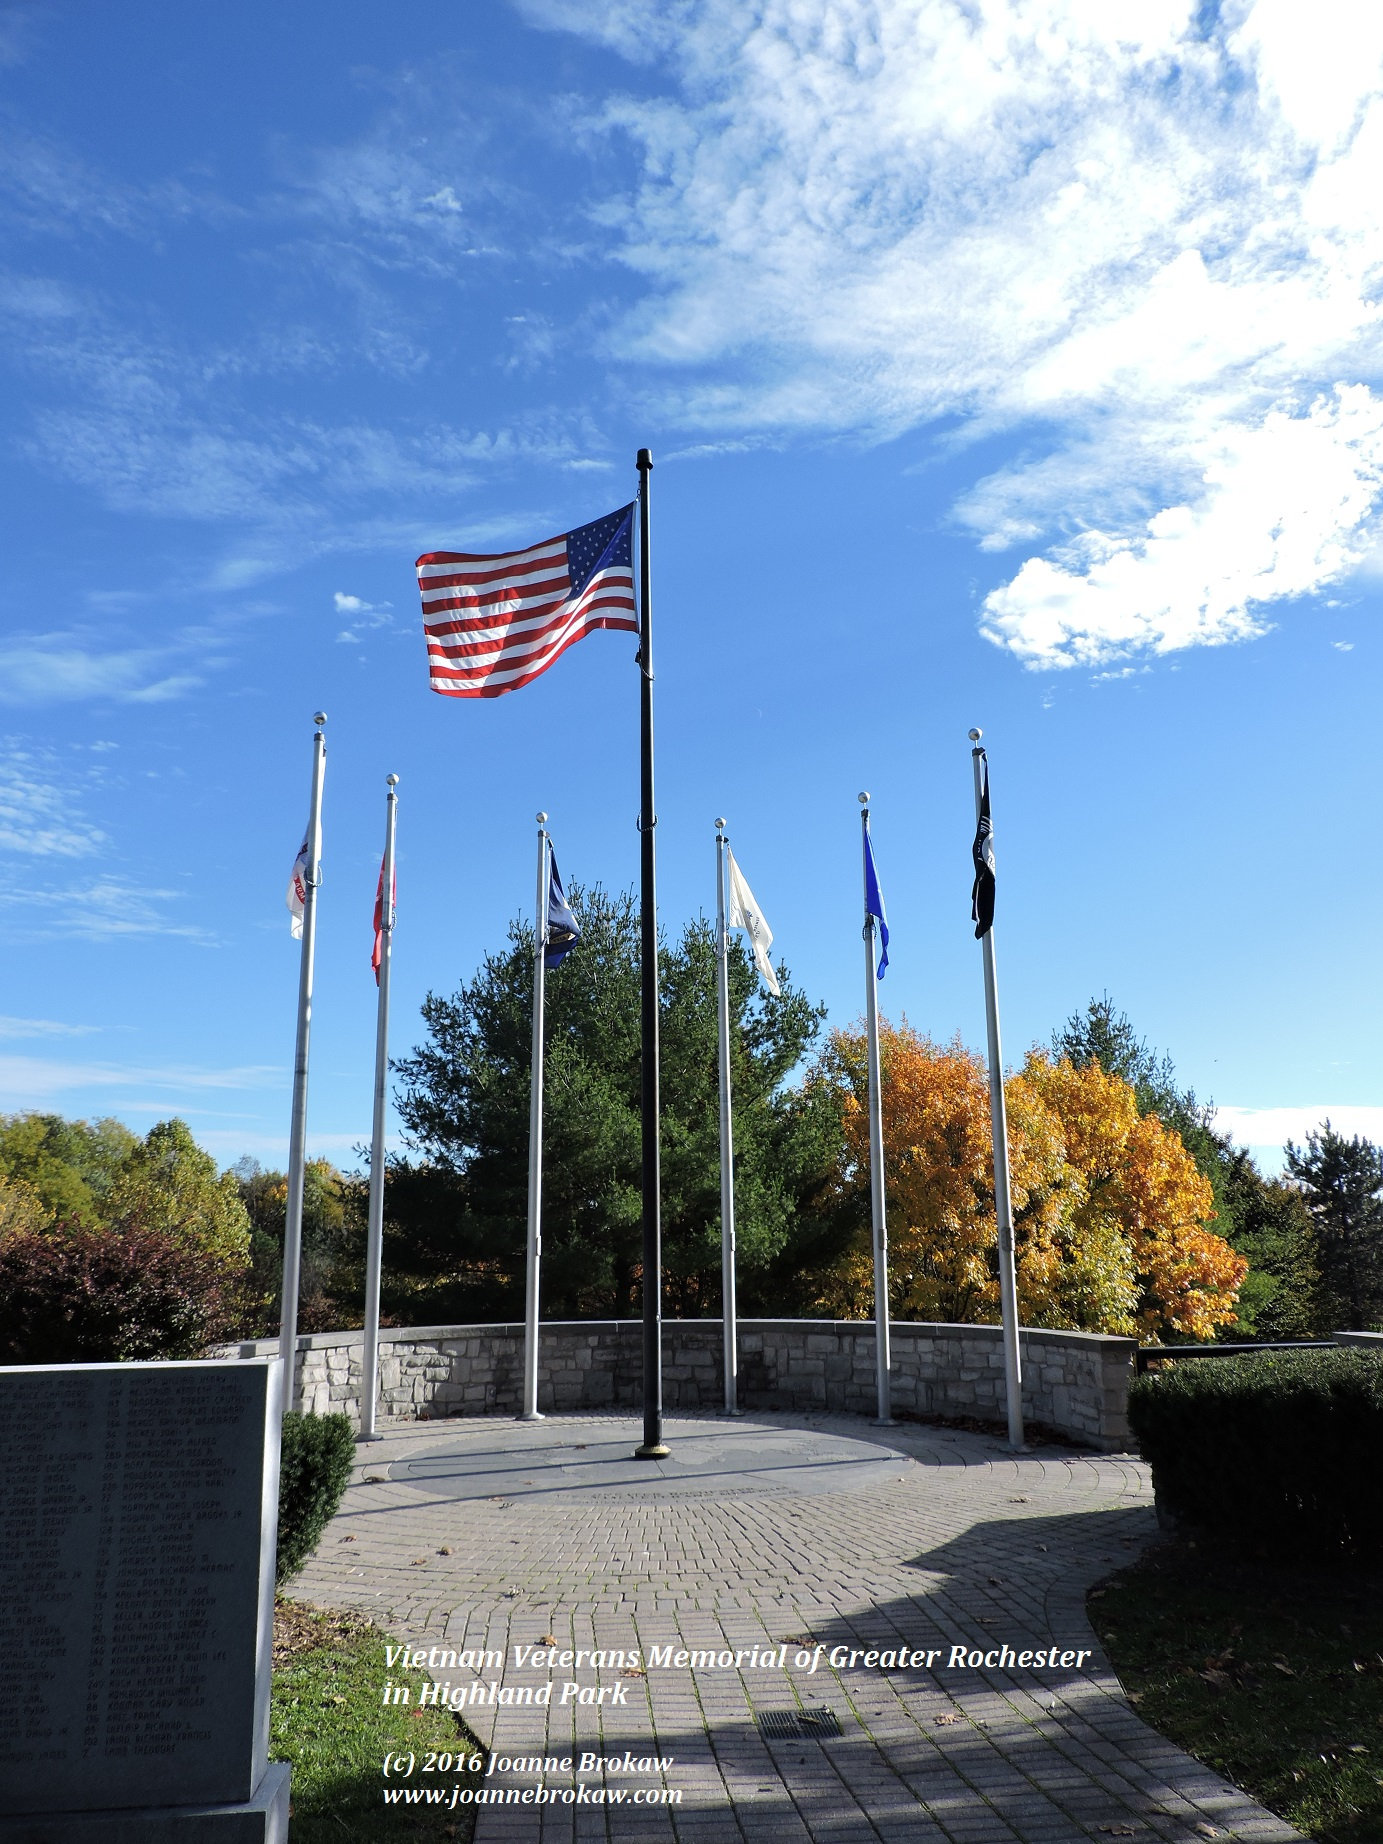 The flags at the Vietnam Veterans Memorial in Highland Park, Rochester, NY.